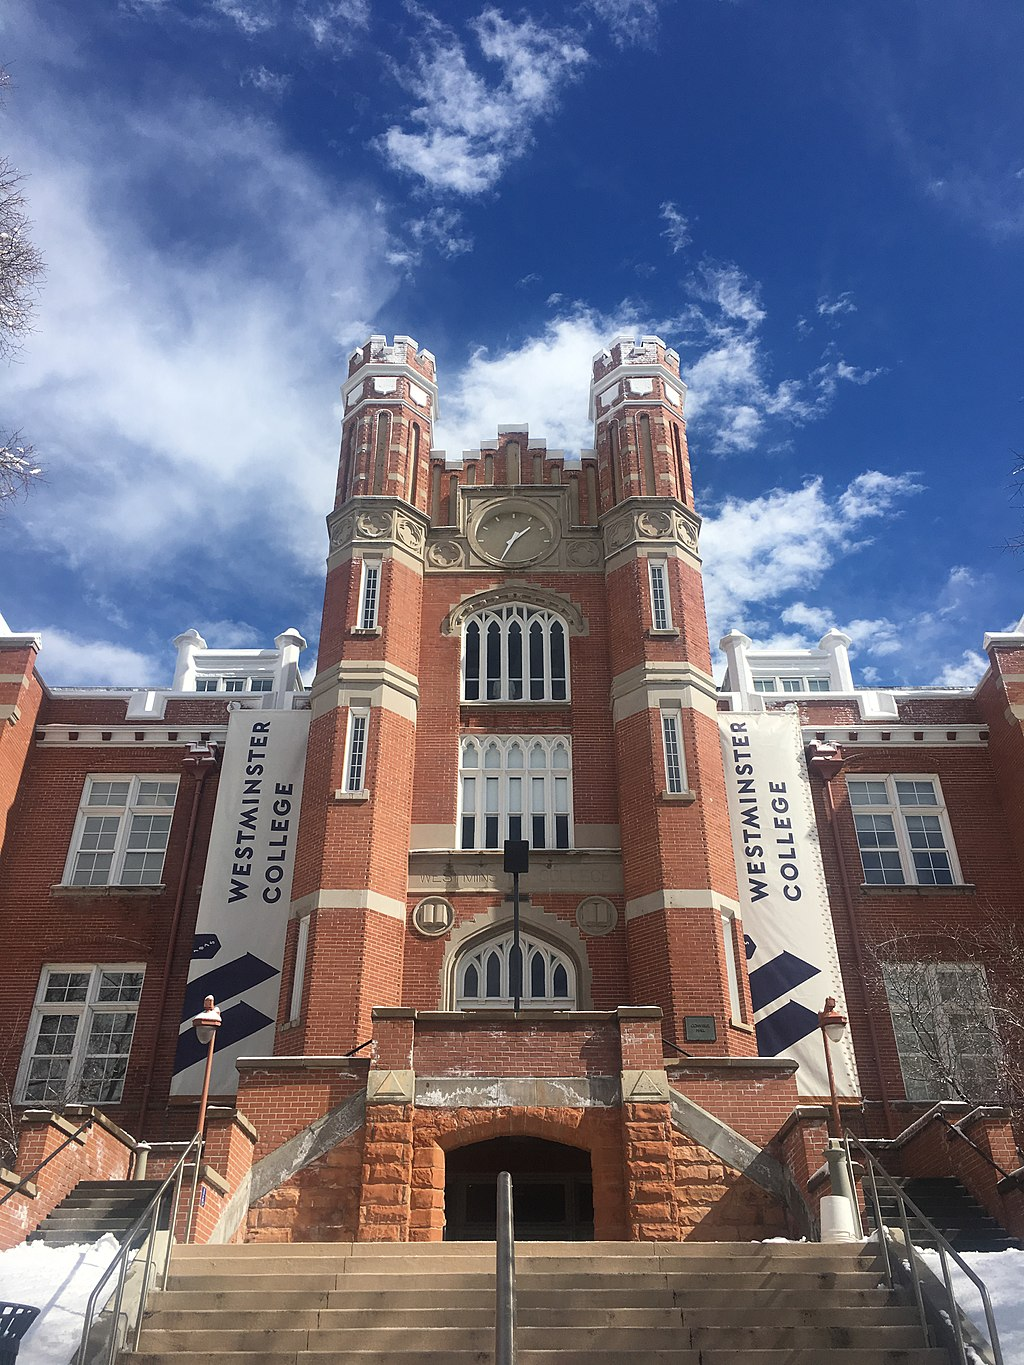 westminster-college-image